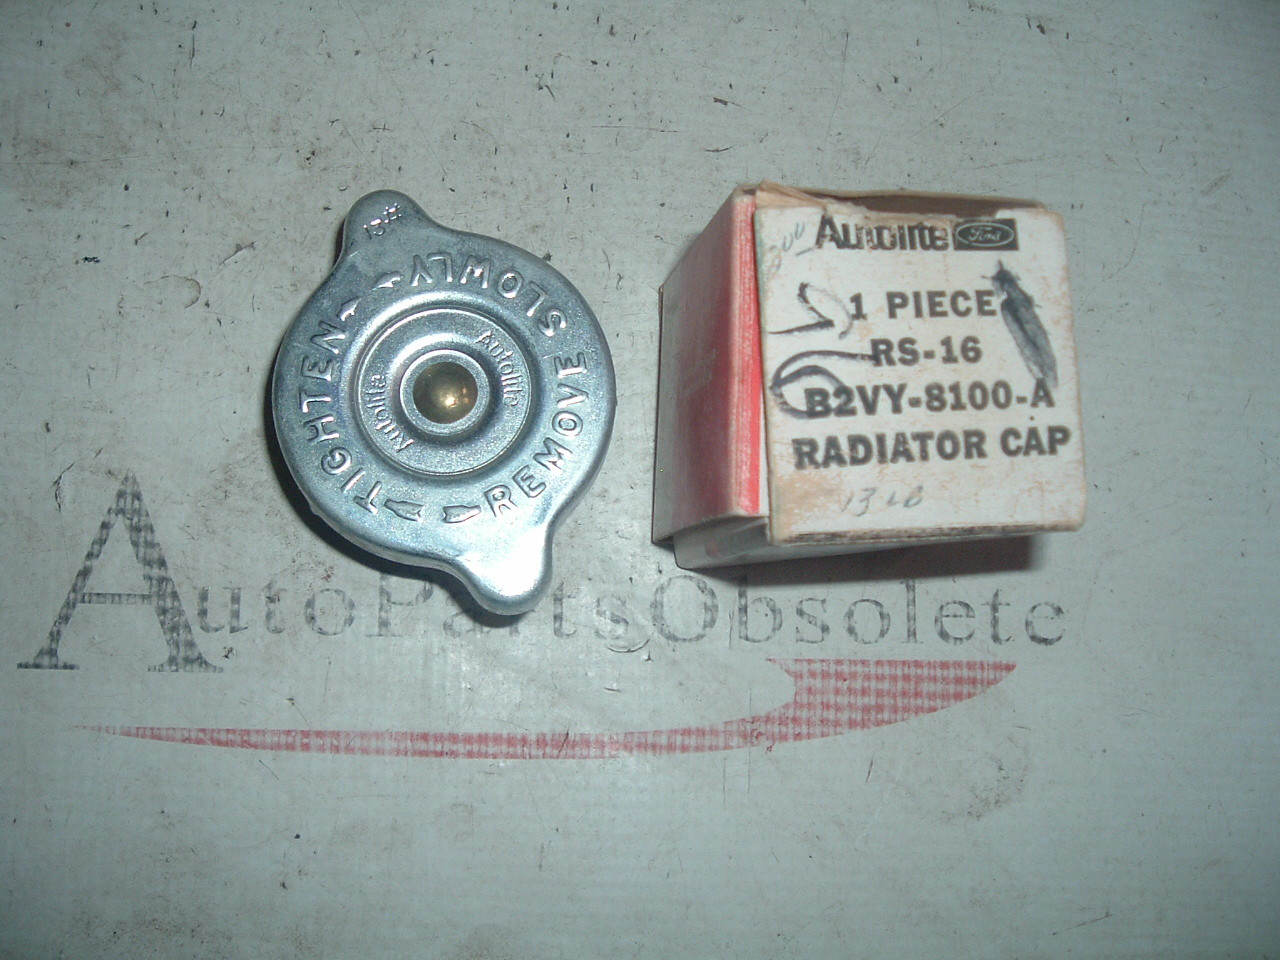 1952 54 56 58 60 63 64 66 68 70 ford mustang, troino, fairlane radiator cap nos ford # B2VY-8100-A (1) (z b2vy8100a)